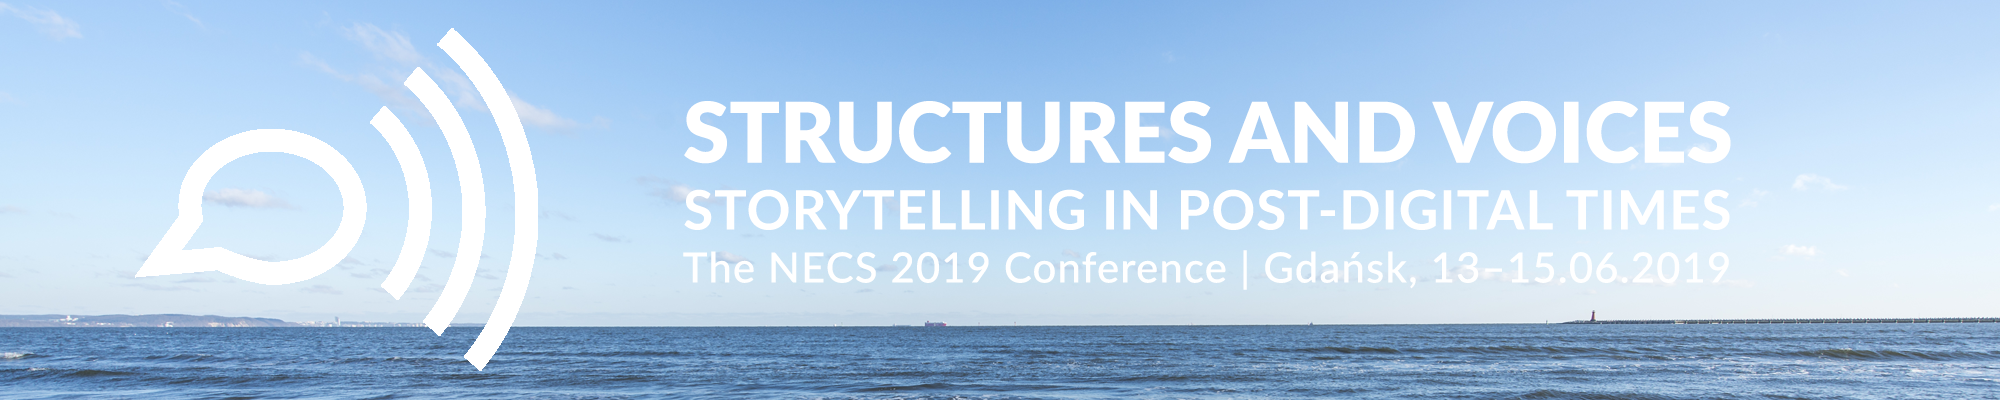 The NECS 2019 Conference